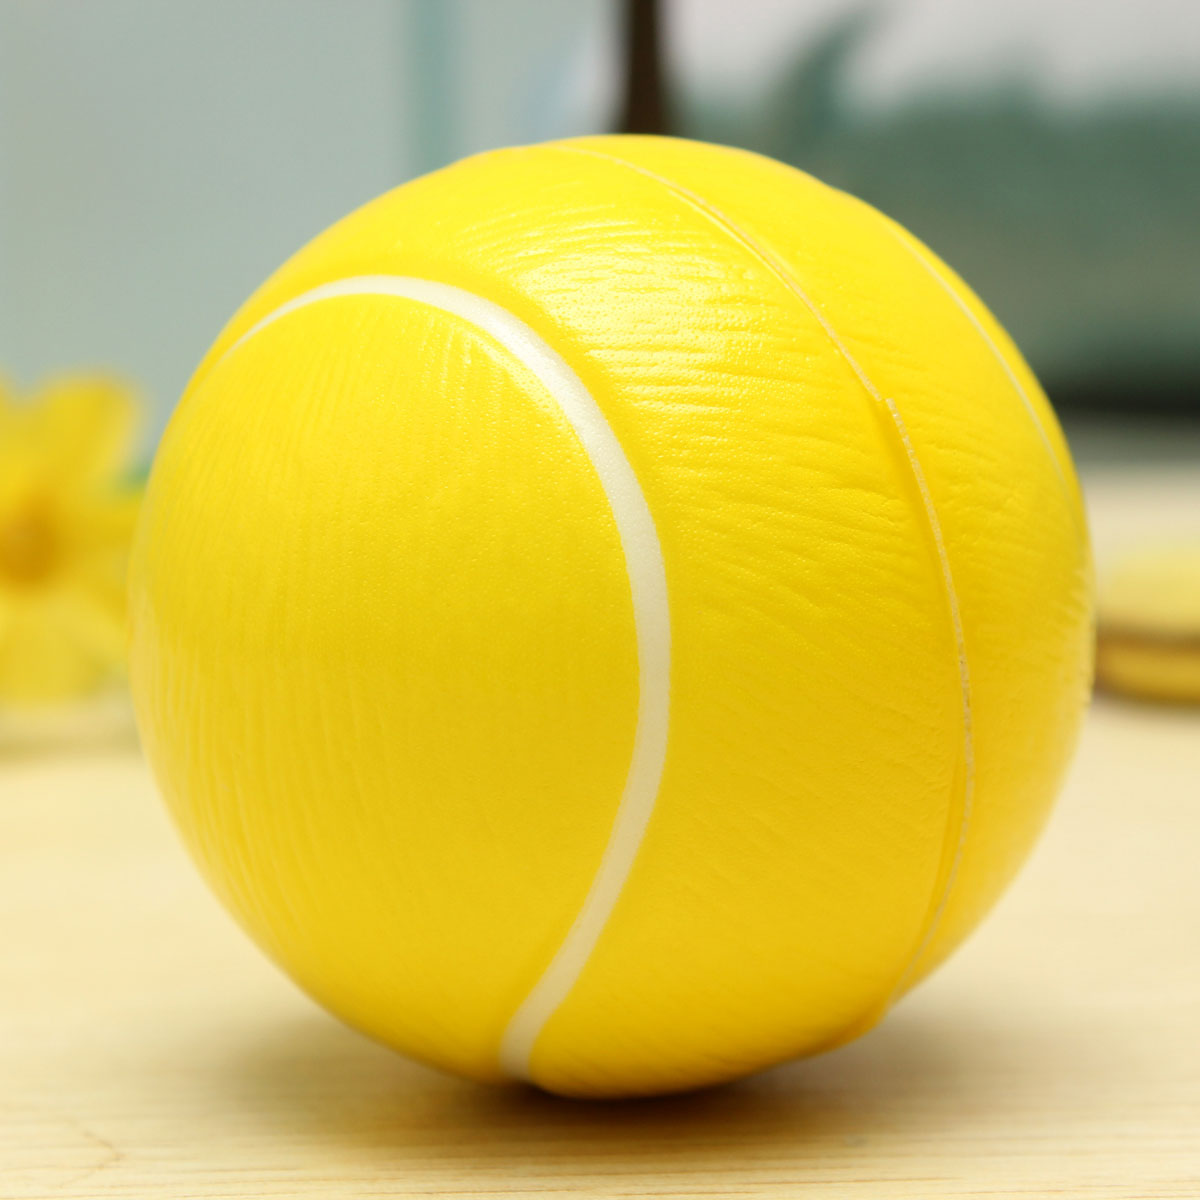 Squishy Tennis Ball : Soft Sponge Foam Stress Relief Press Squeeze Bouncy Ball Kids Educational Toy Tennis Ball - Intl ...